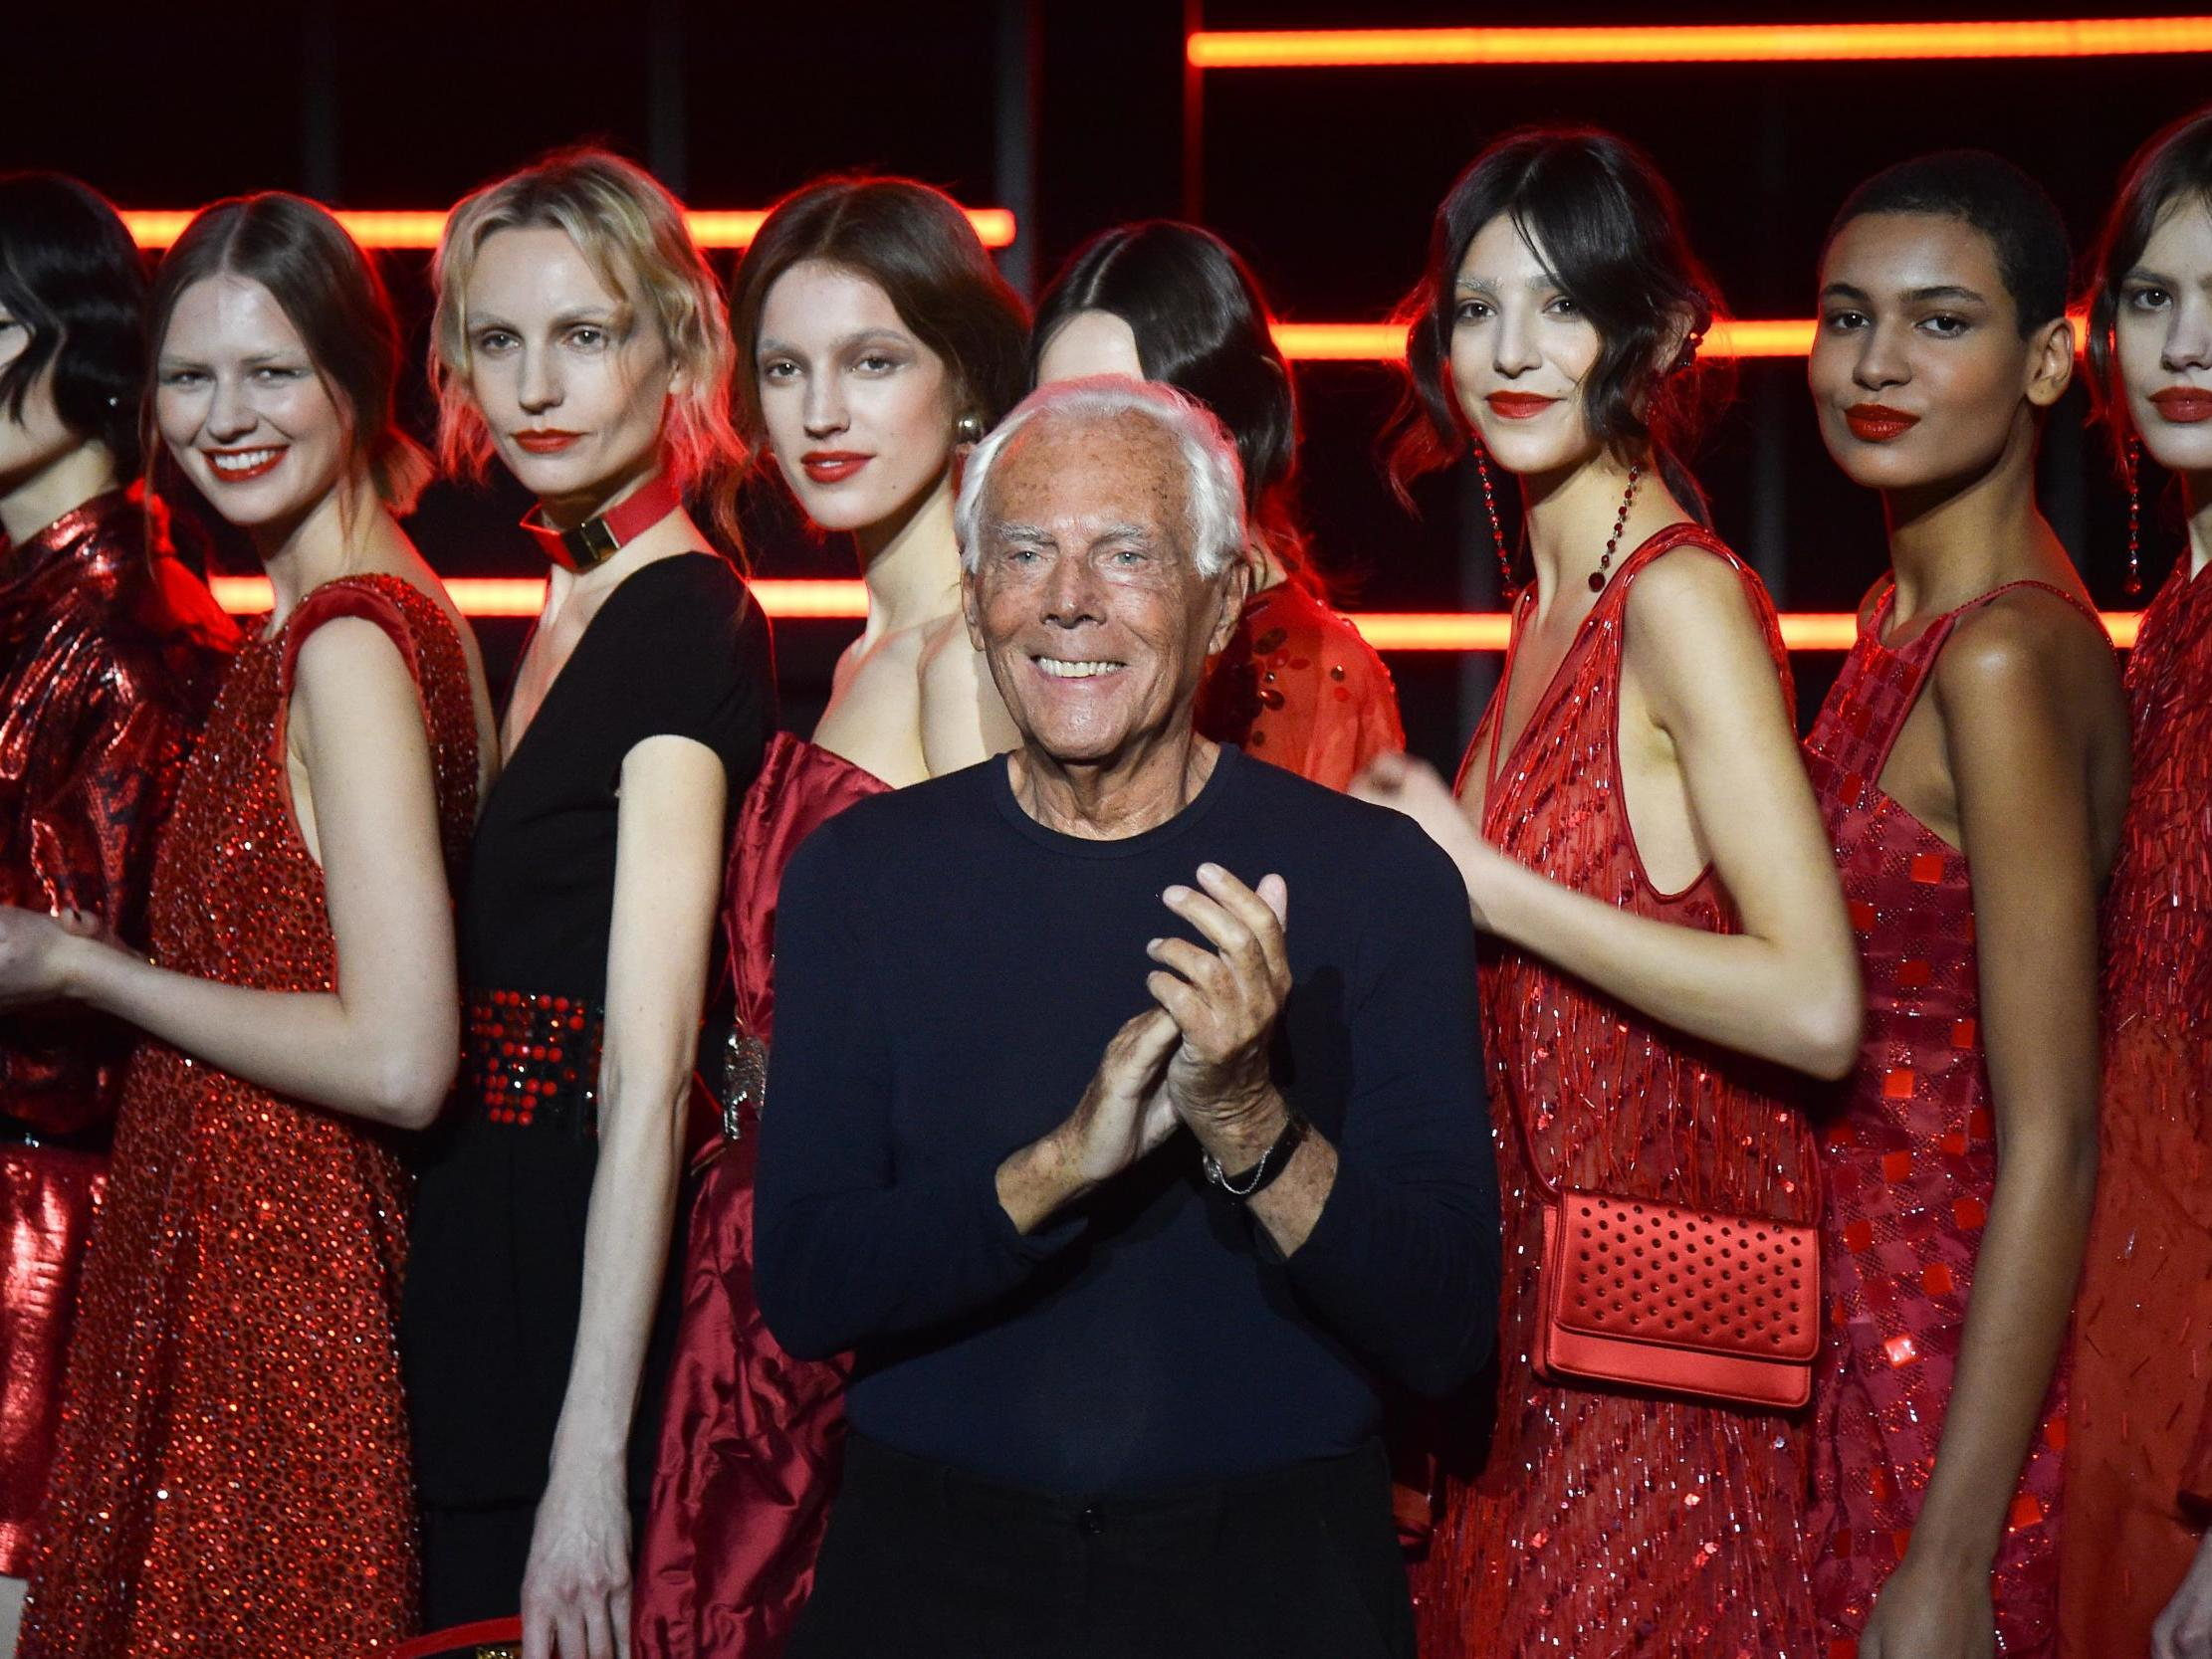 Giorgio Armani condemned for likening treatment of women by fashion designers to rape